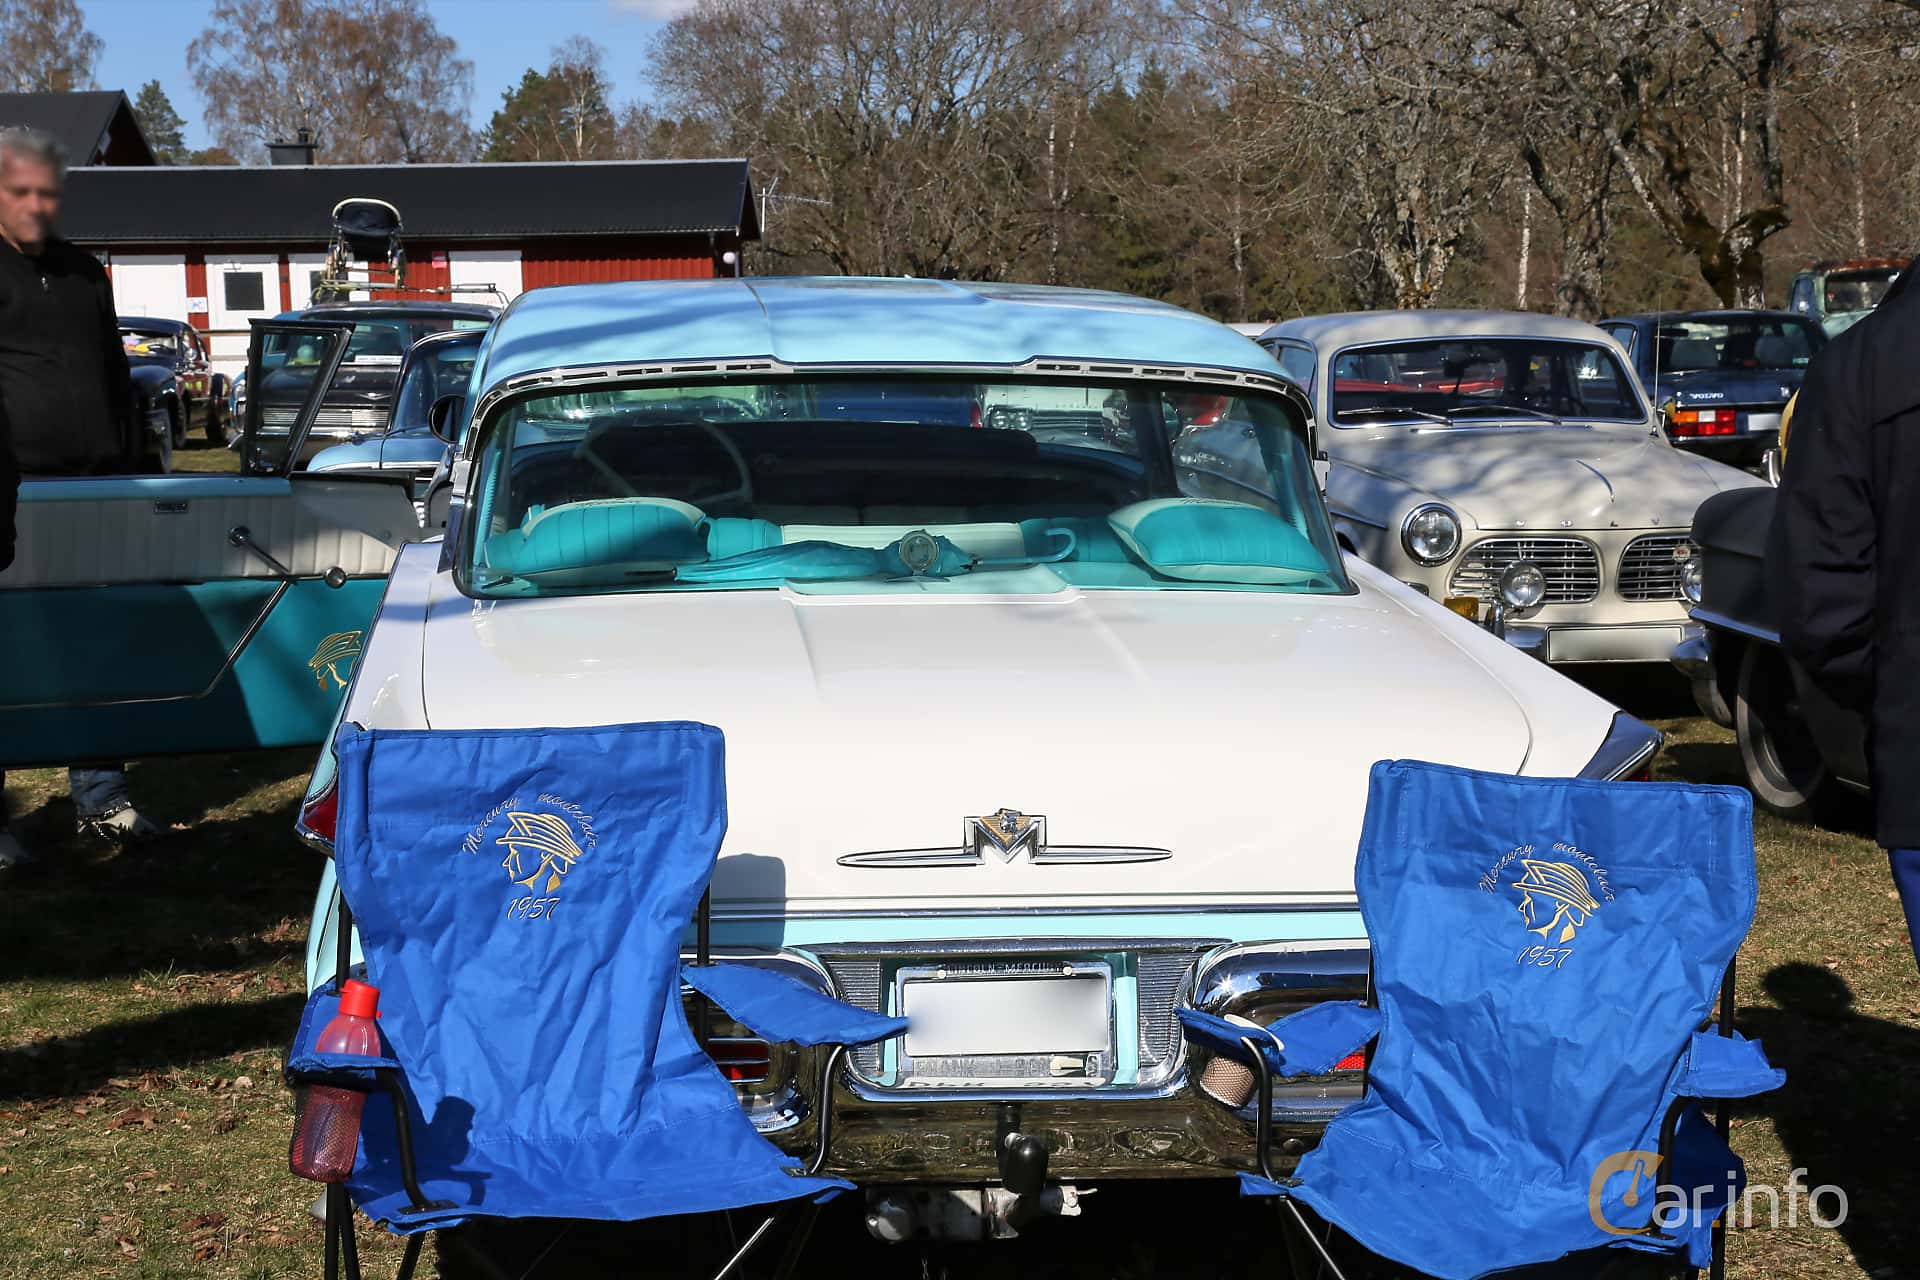 Mercury Montclair 2-door Hardtop 5.1 V8 Automatic, 258hp, 1957 at Uddevalla Veteranbilsmarknad Backamo, Ljungsk 2019